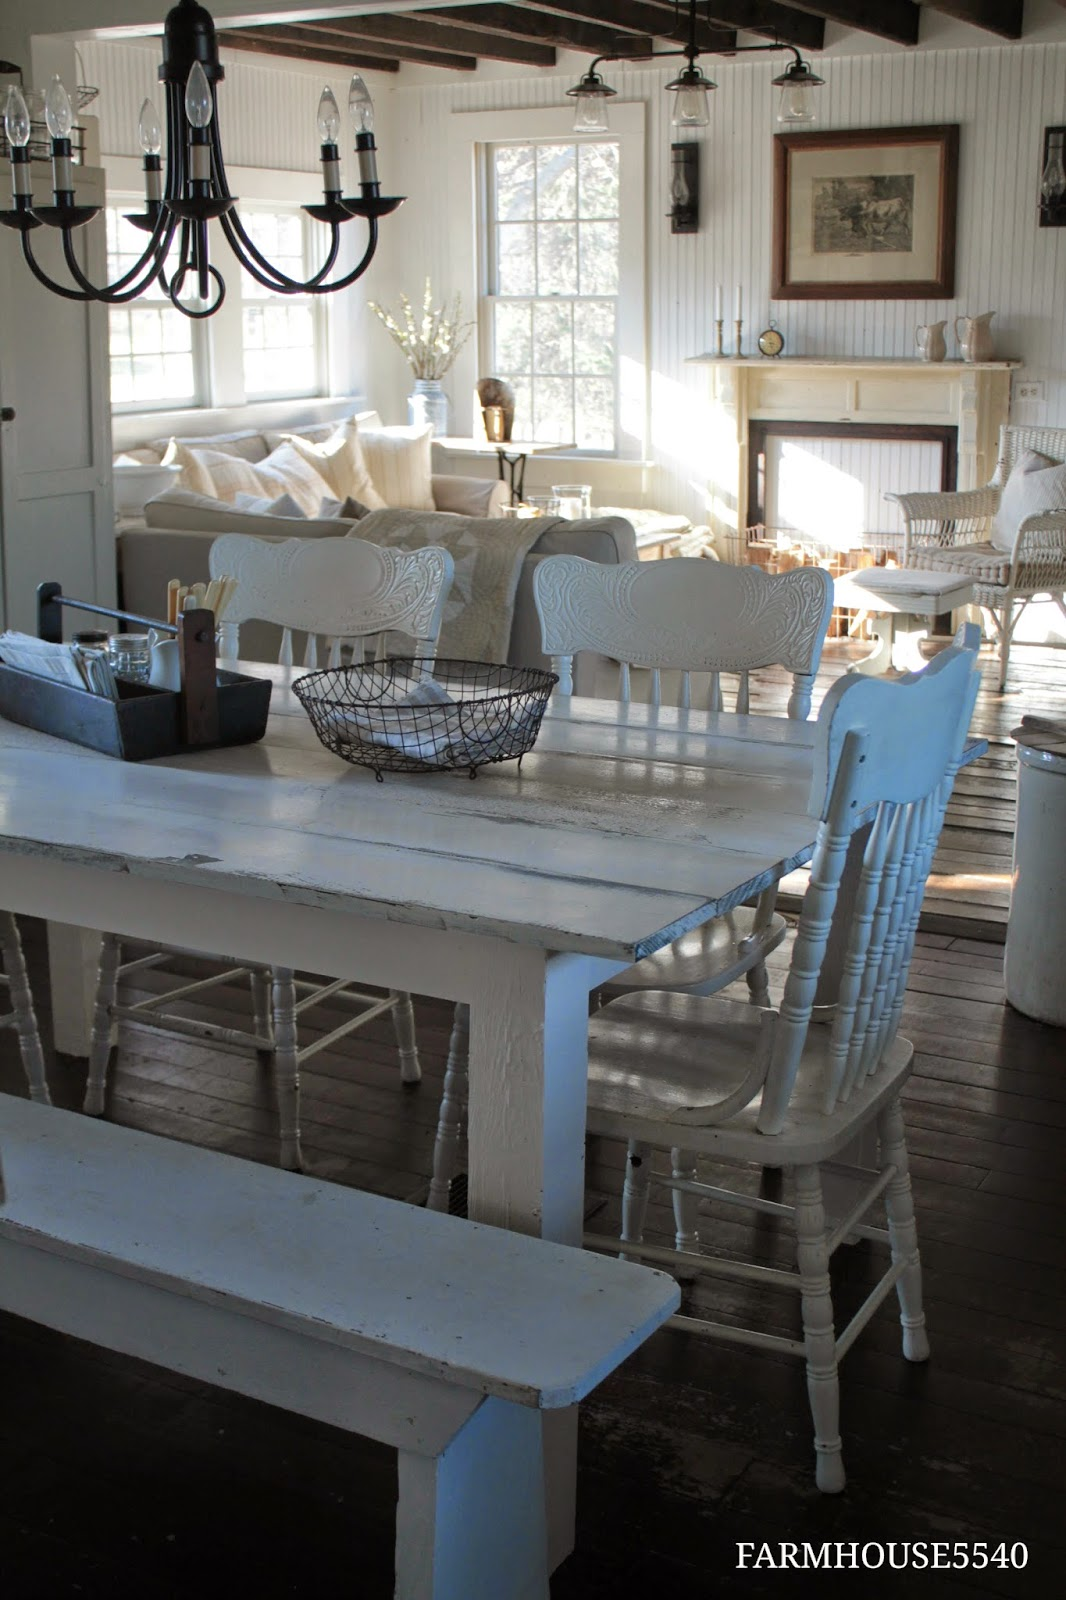 Farmhouse 5540 Our Farmhouse Kitchen Table